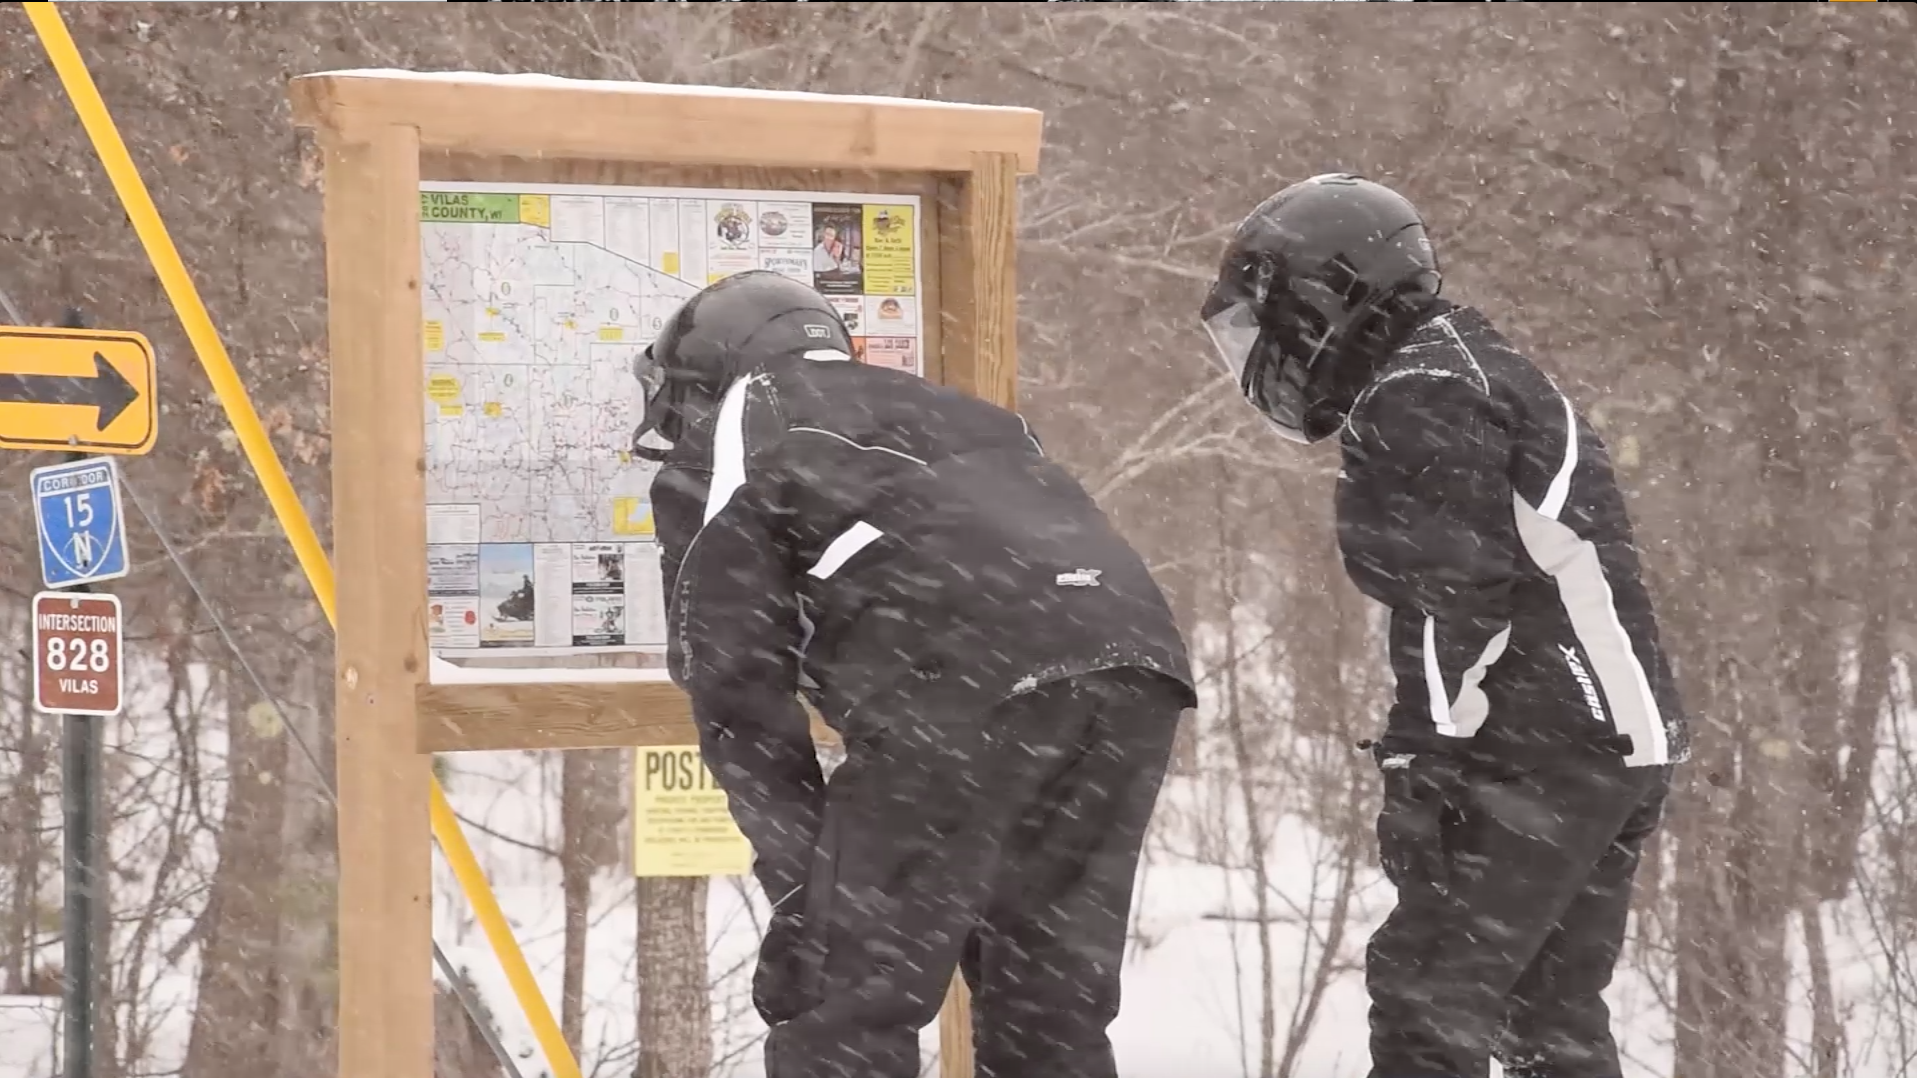 Snowmobiling 101: Reading a snowmobile map - Boulder Junction